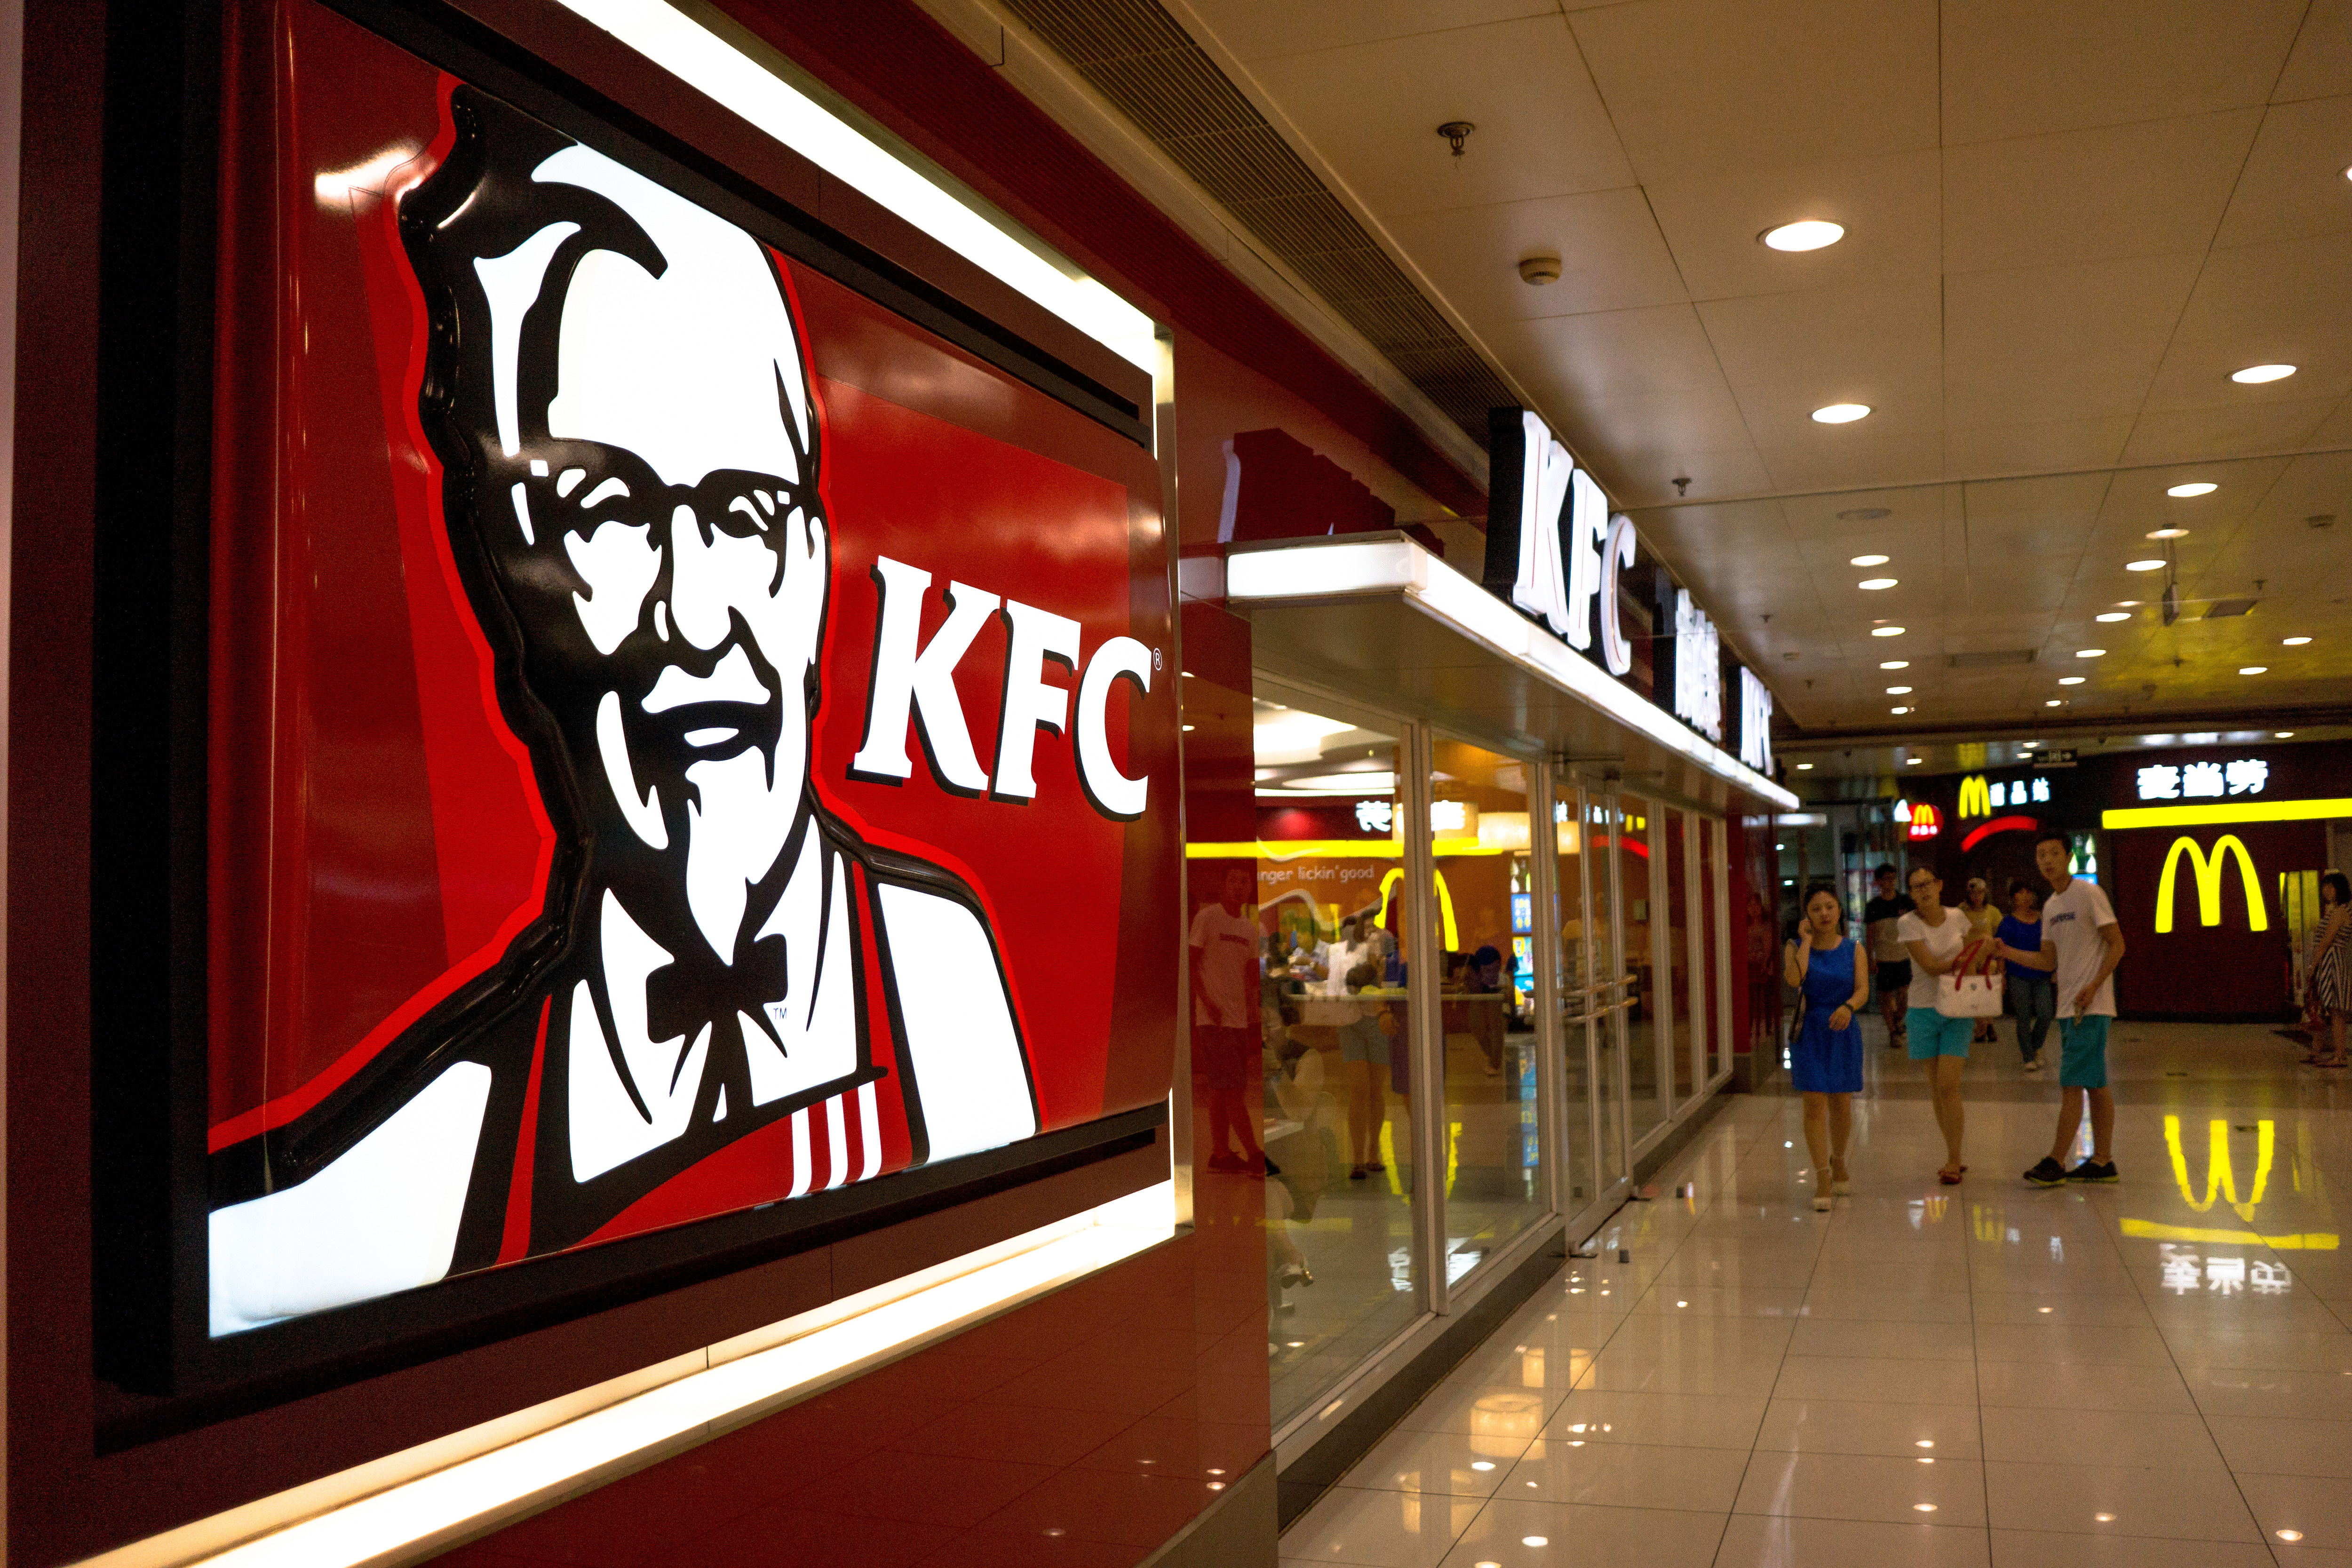 A KFC restaurant in a shopping mall in China.